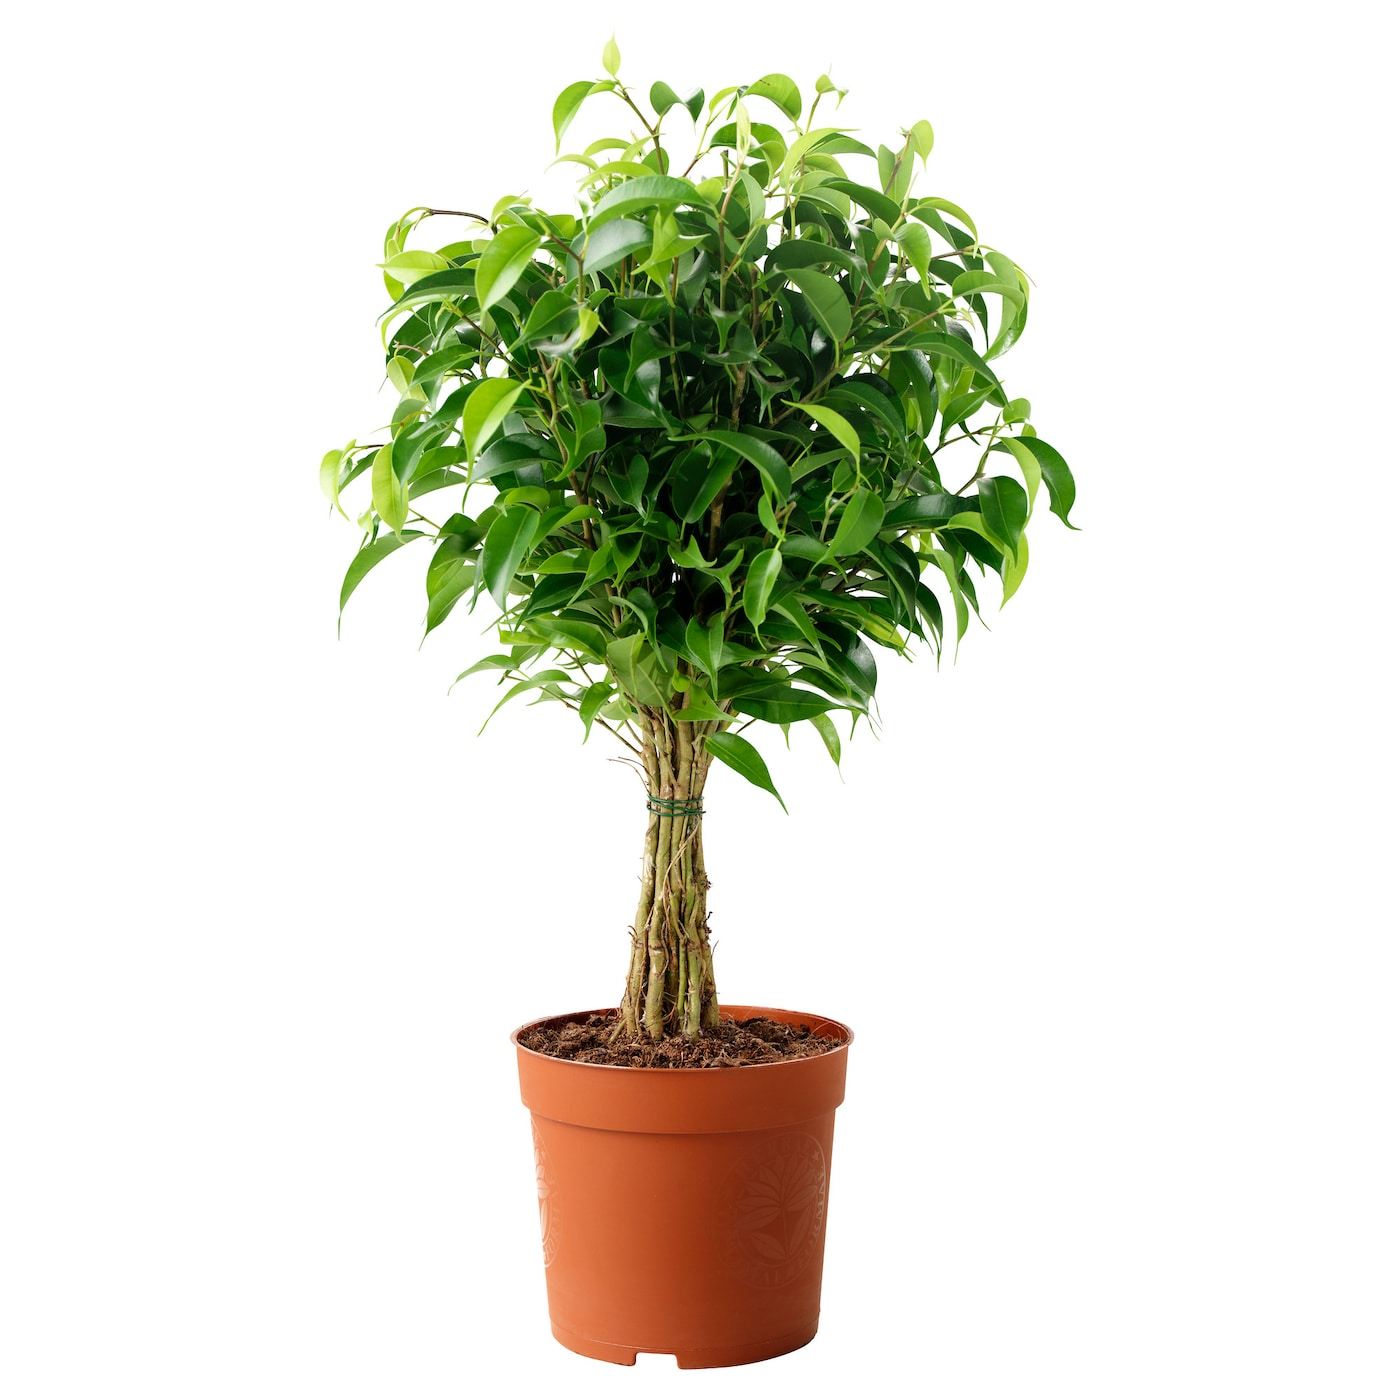 Home Decoration With Plants Ficus Benjamina Natasja Potted Plant Weeping Fig 12 Cm